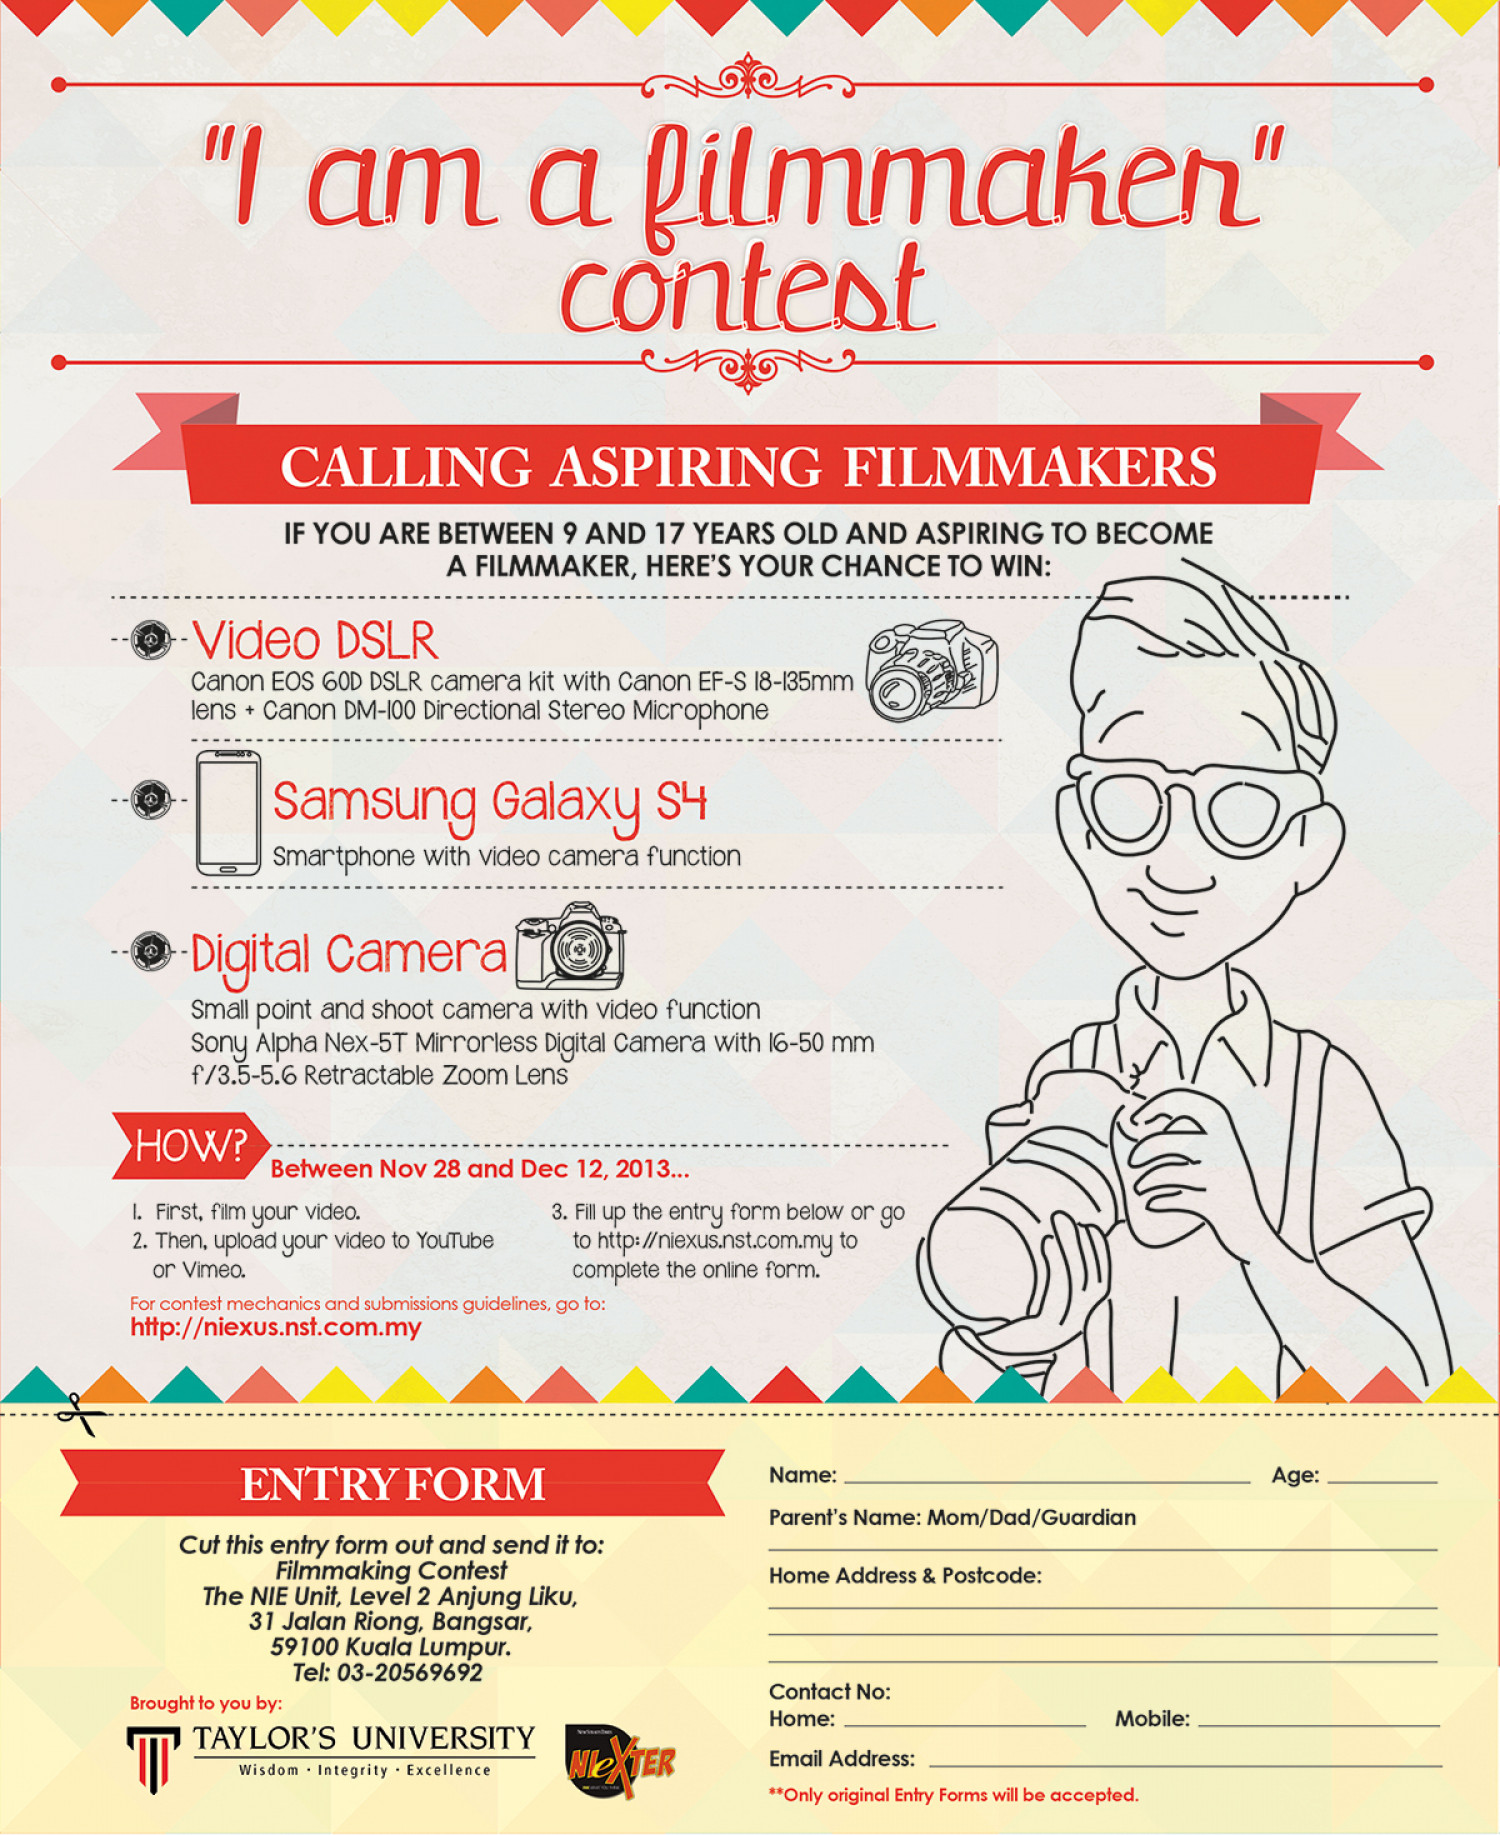 """I am a filmmaker"" Contest Ad Infographic"